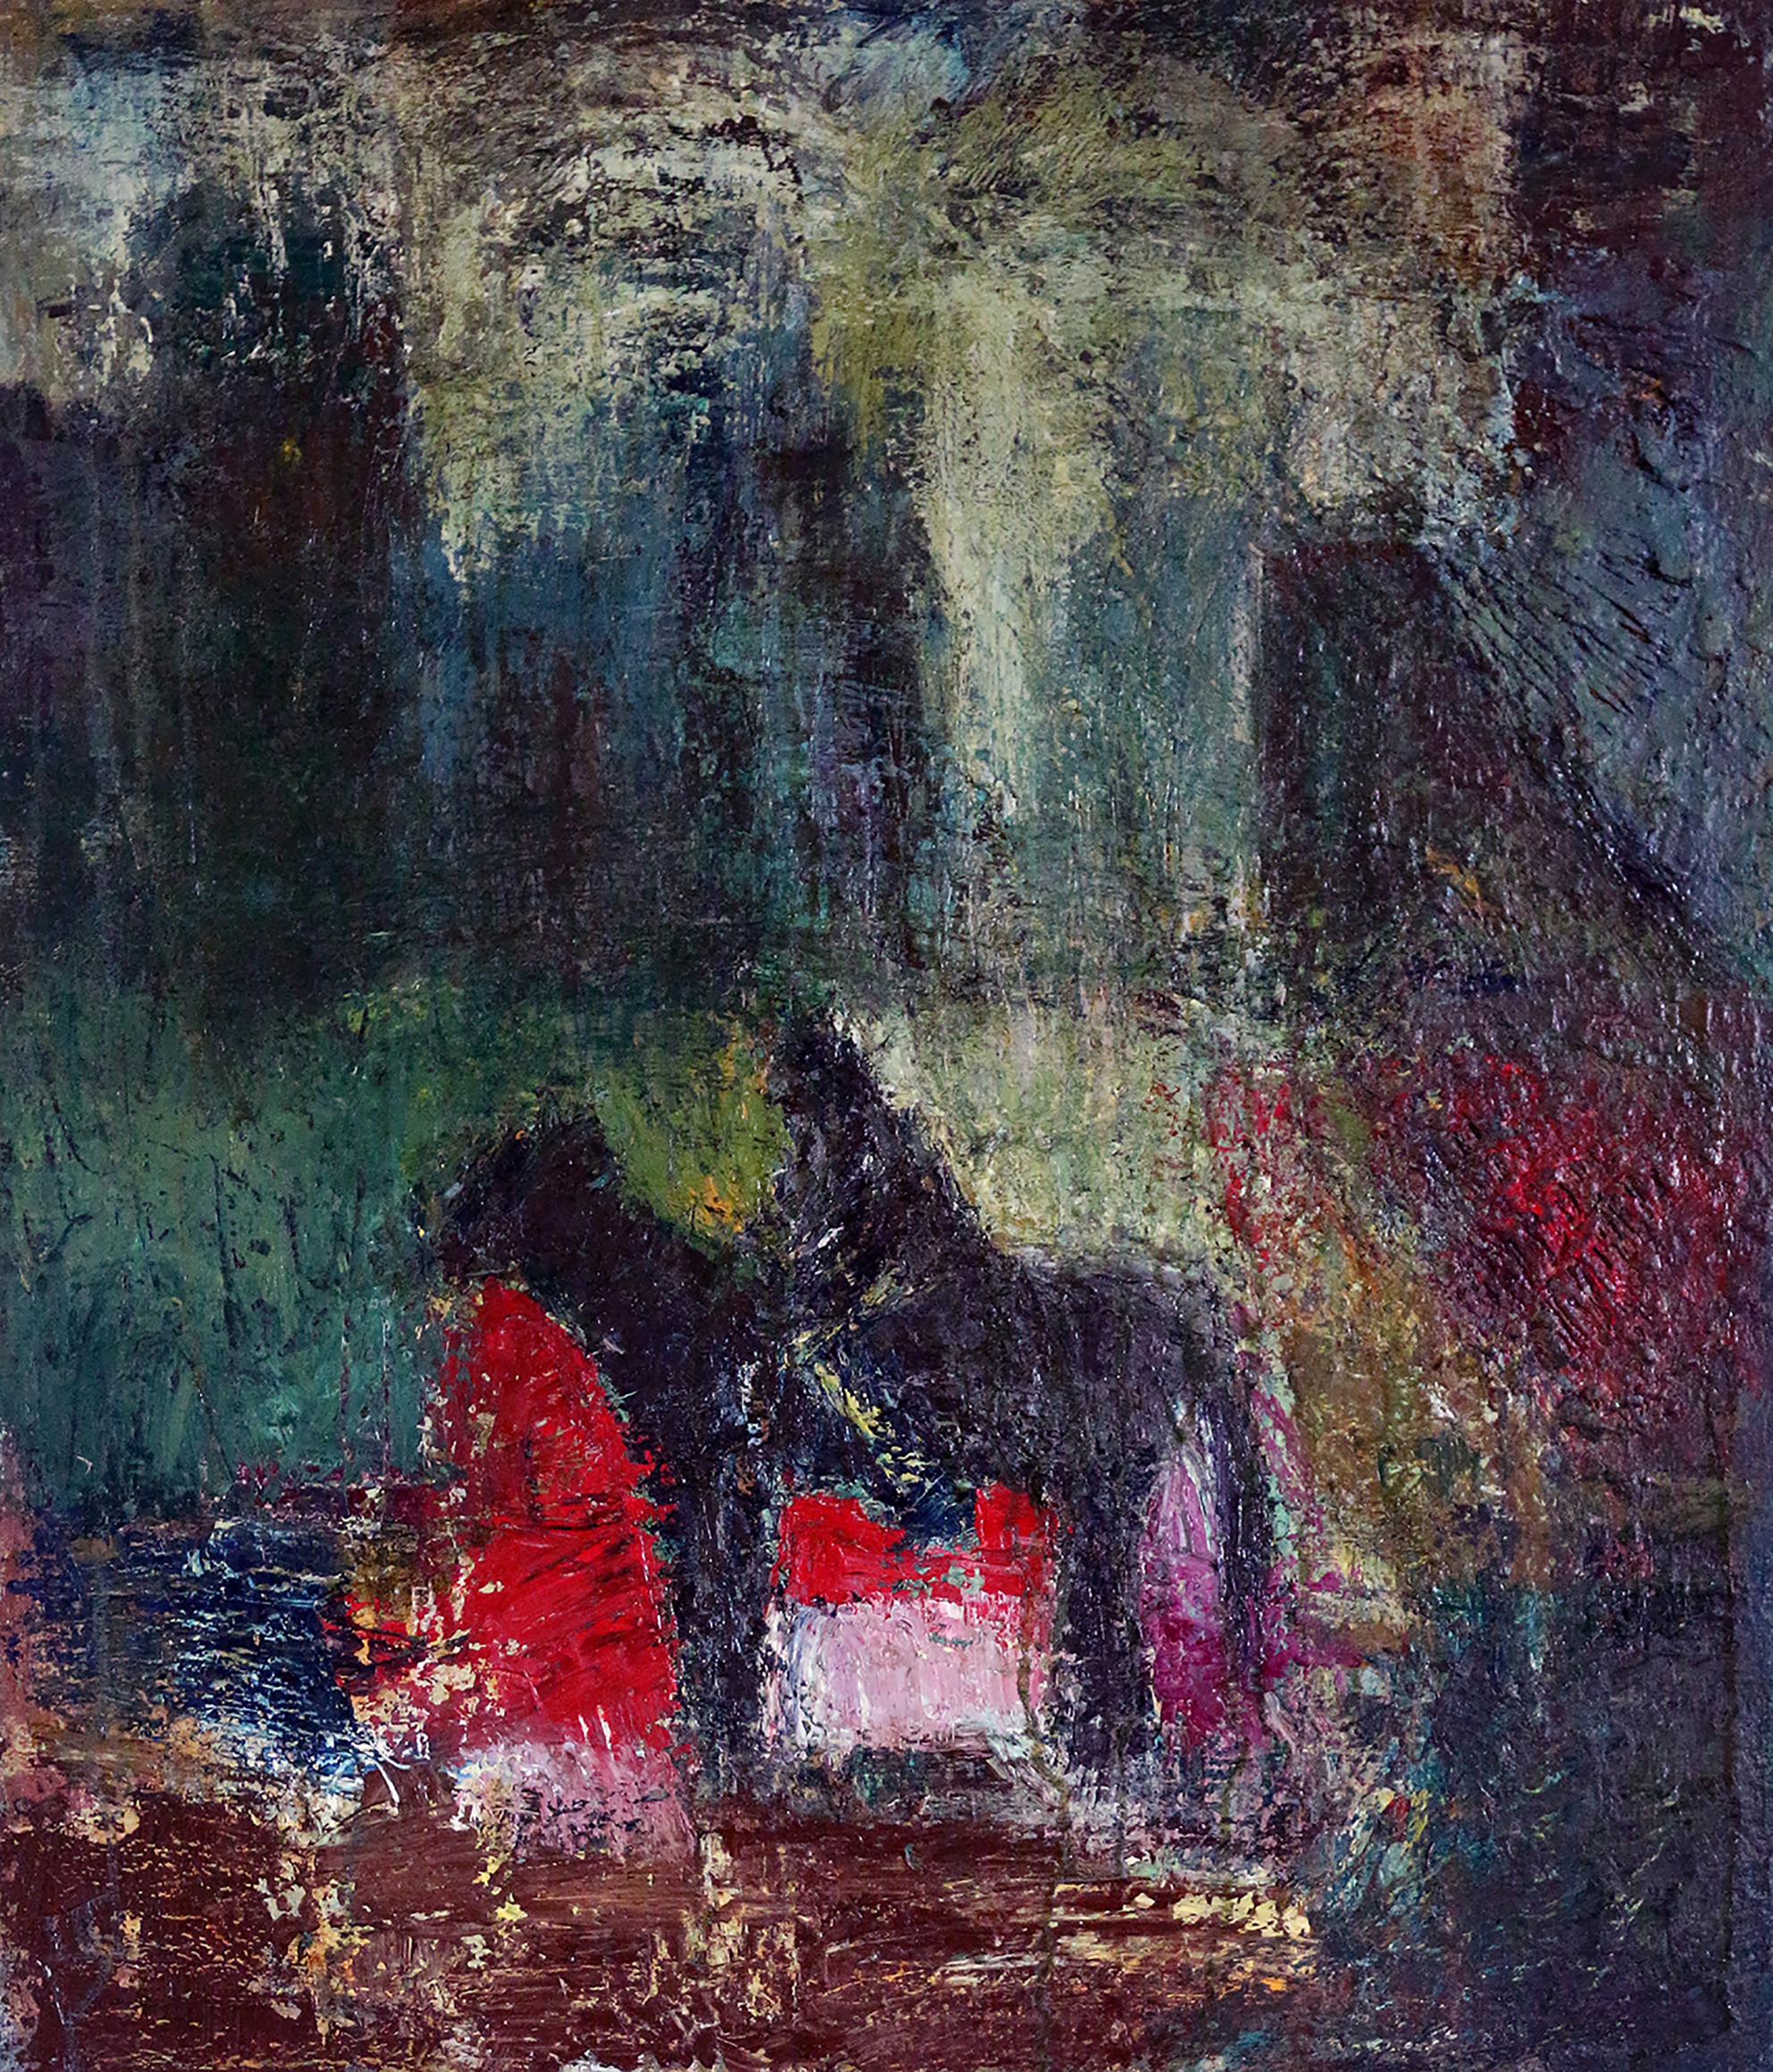 Horseman artwork by Tehmina Harutyunyan - art listed for sale on Artplode